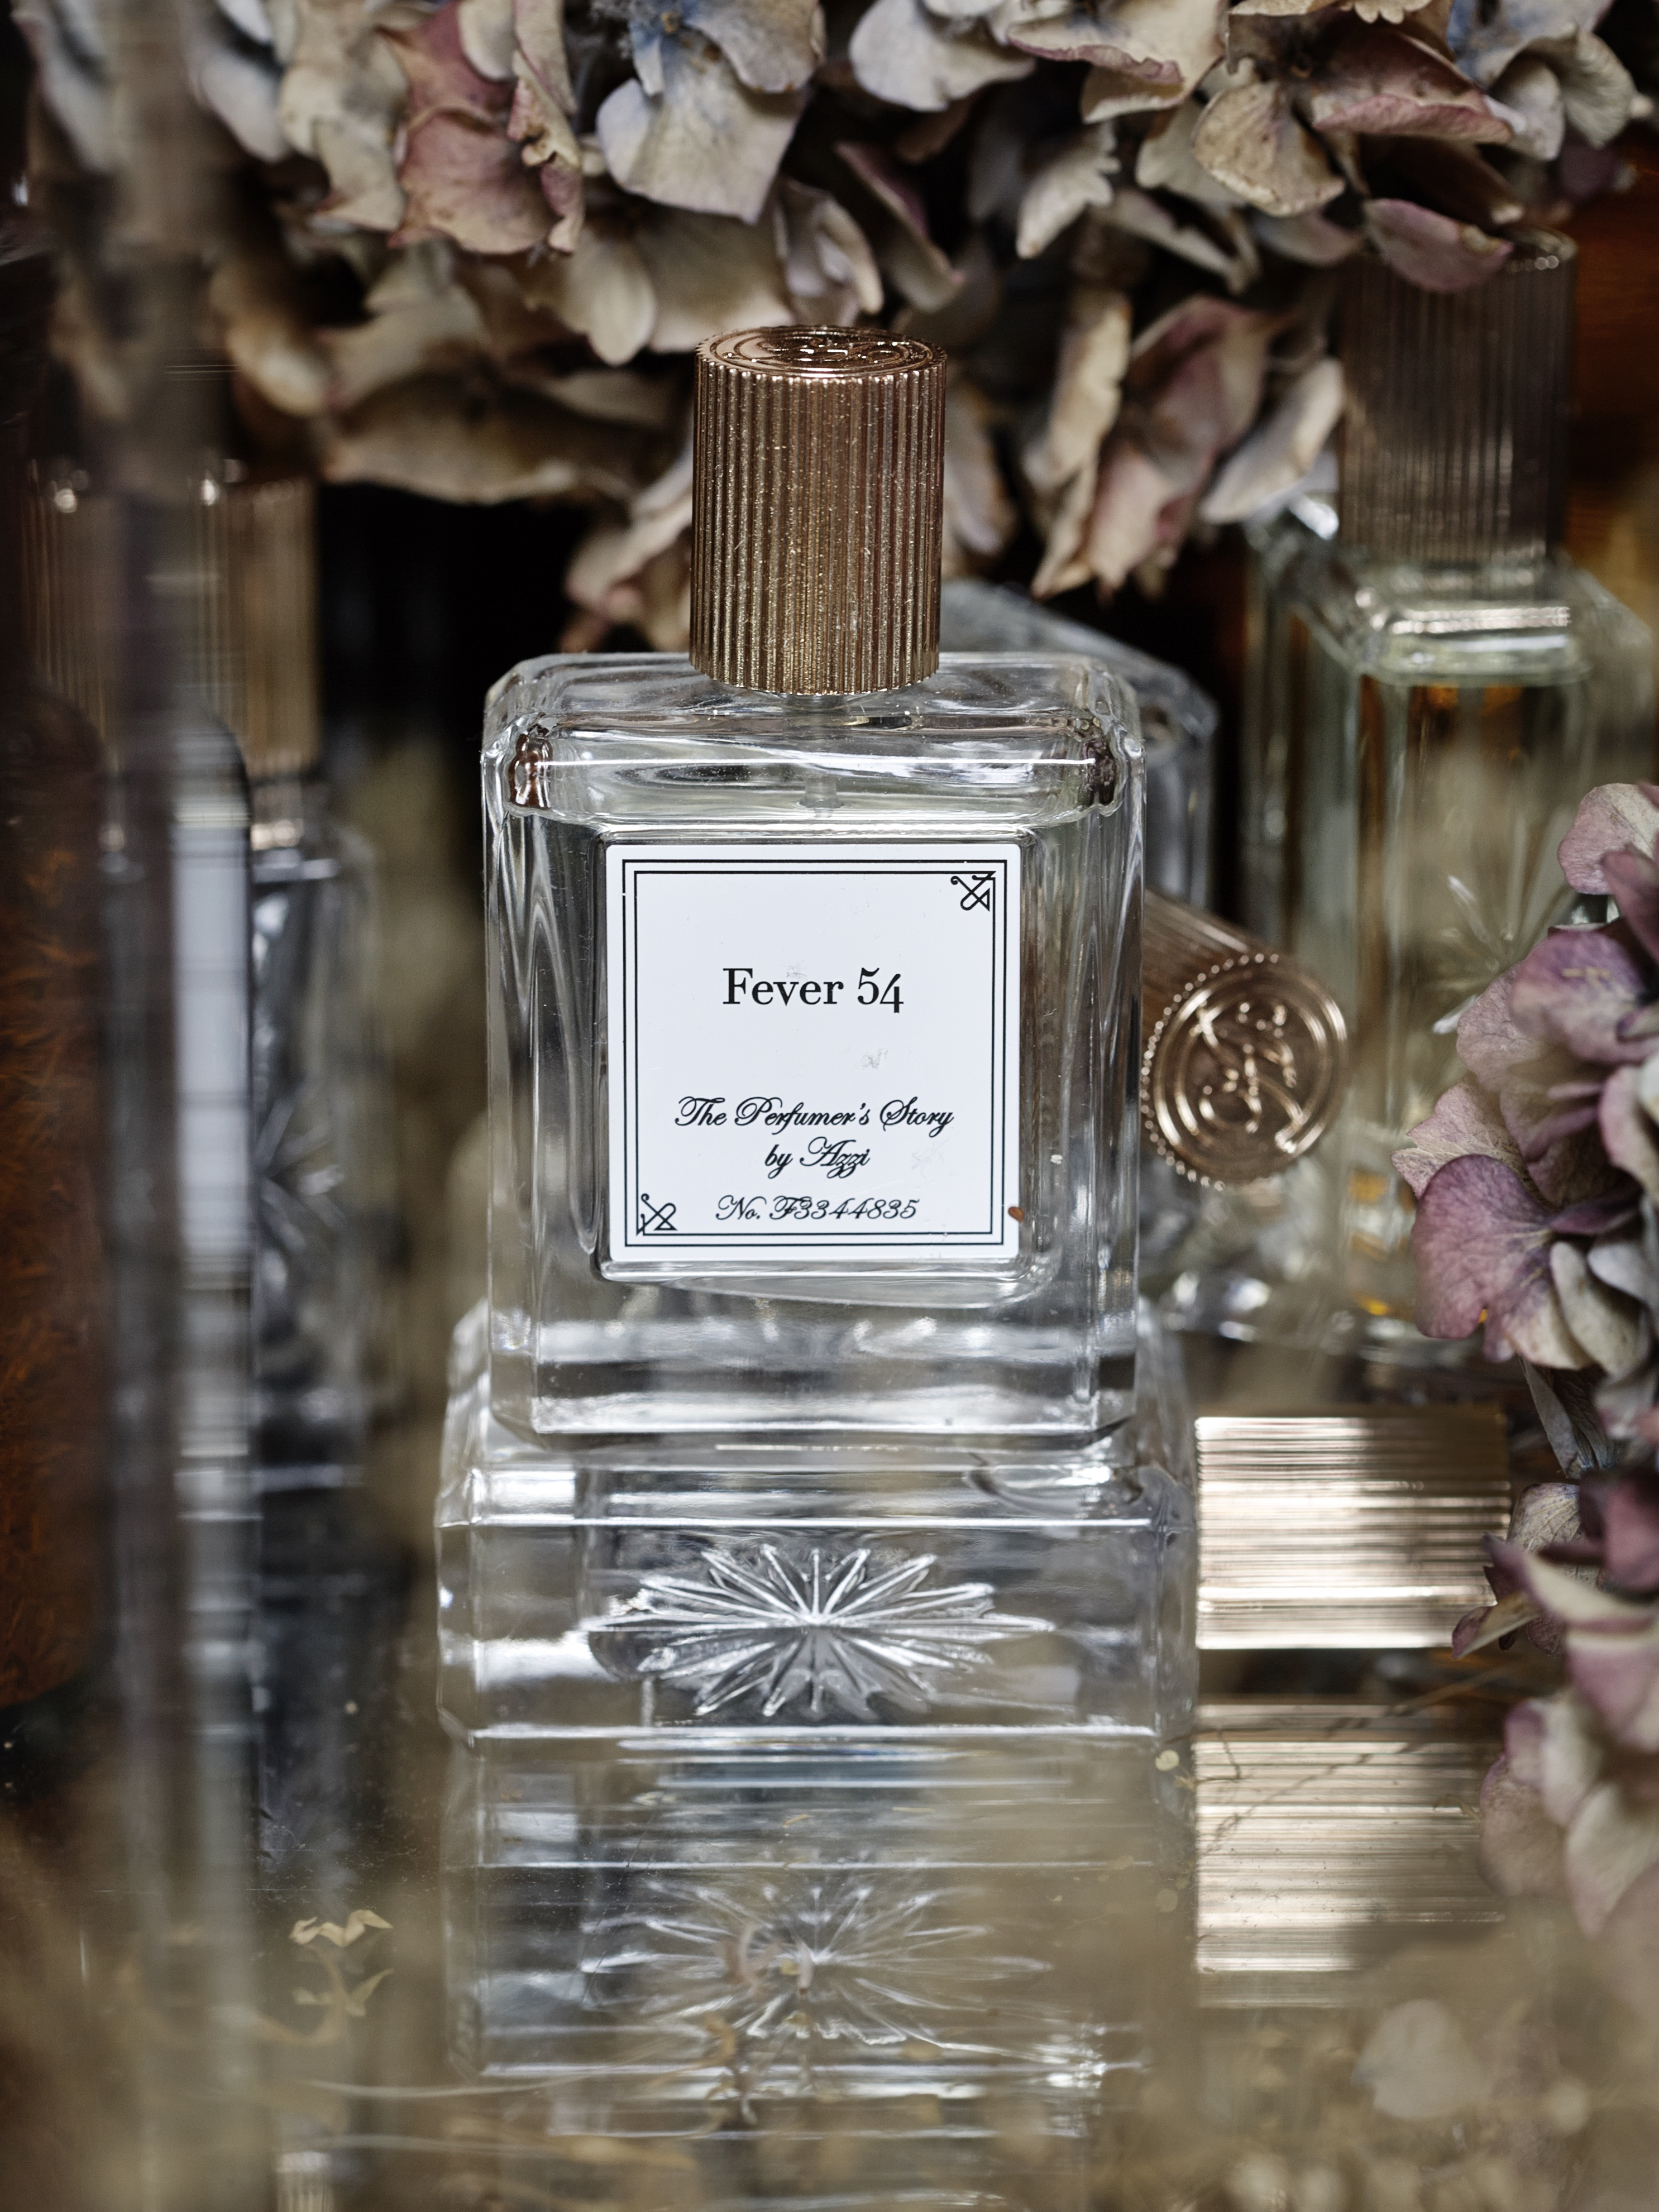 Fever 54 Eau De Parfum 30ml by The Perfumer's Story by Azzi on curated-crowd.com